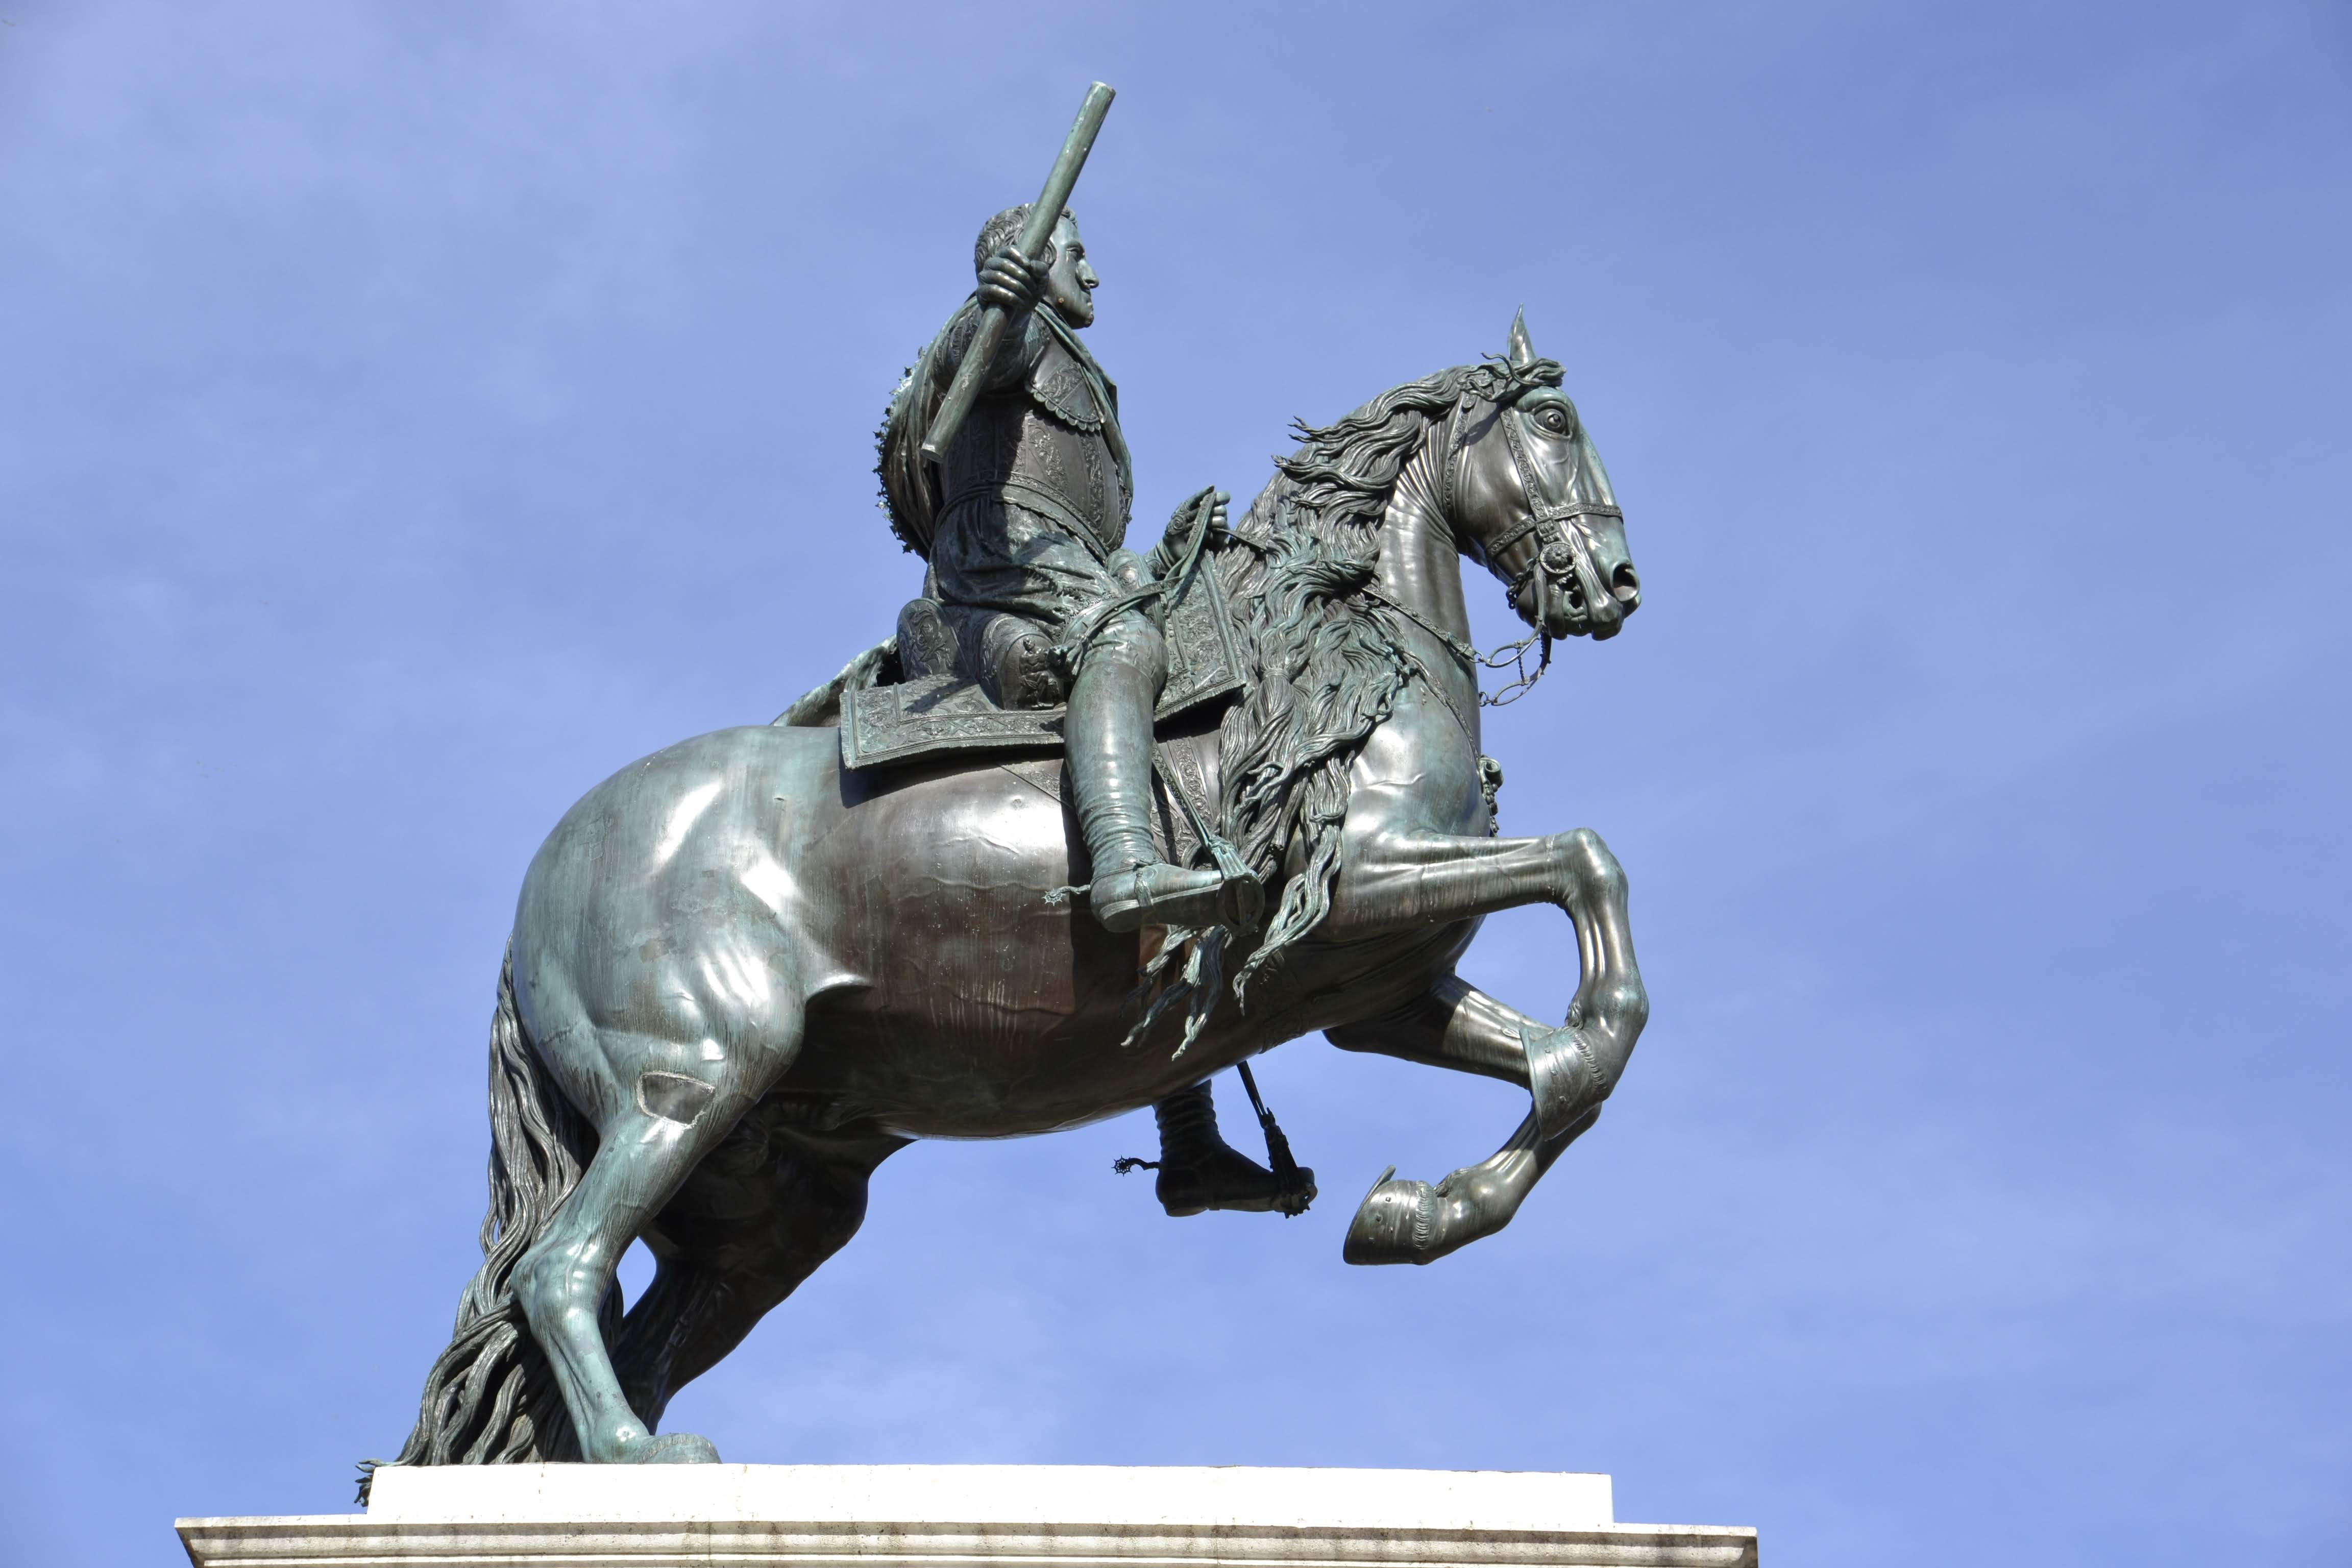 man riding on horse statue under blue sky